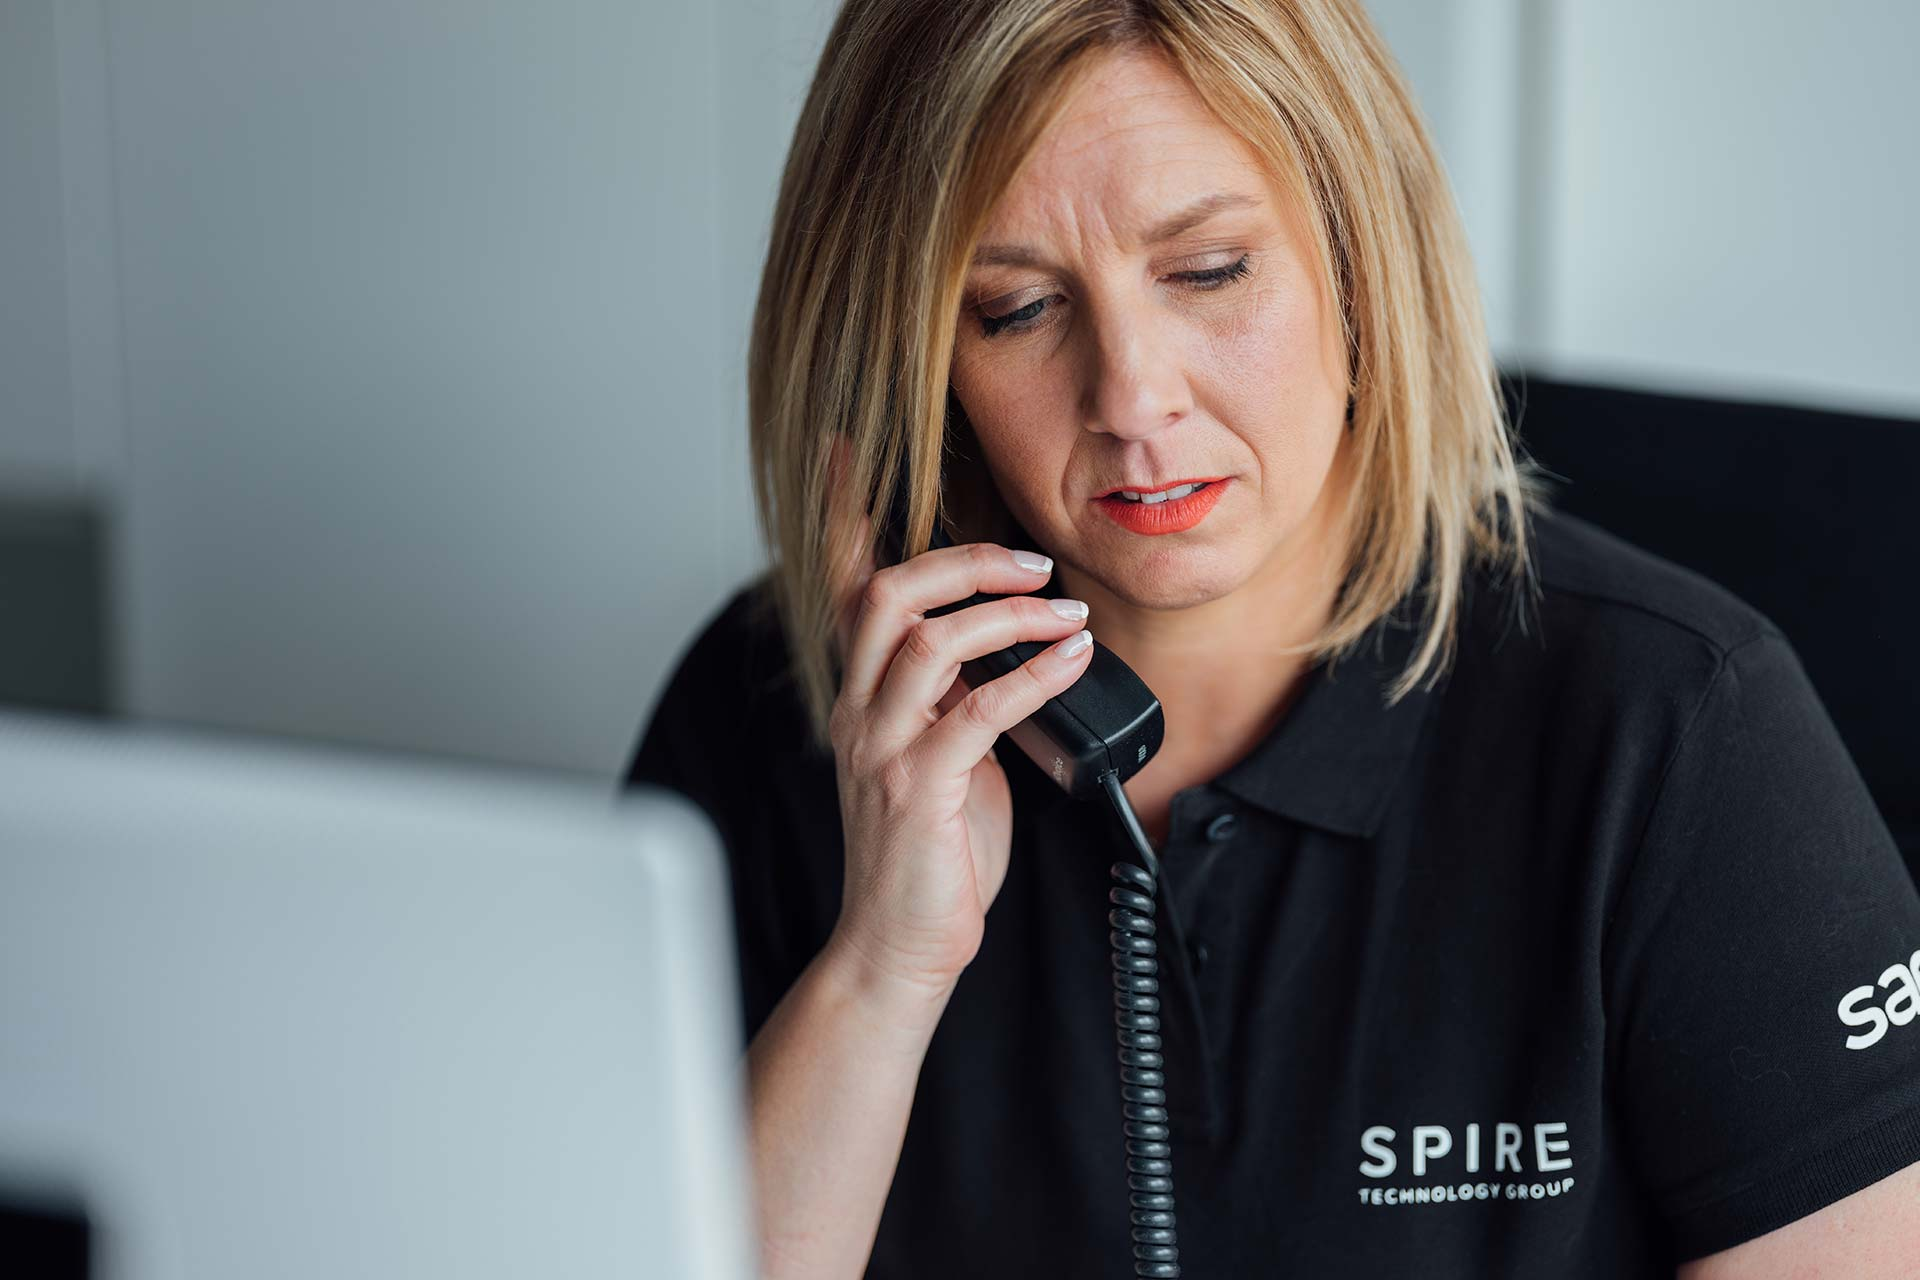 Spire call desk lady on phone